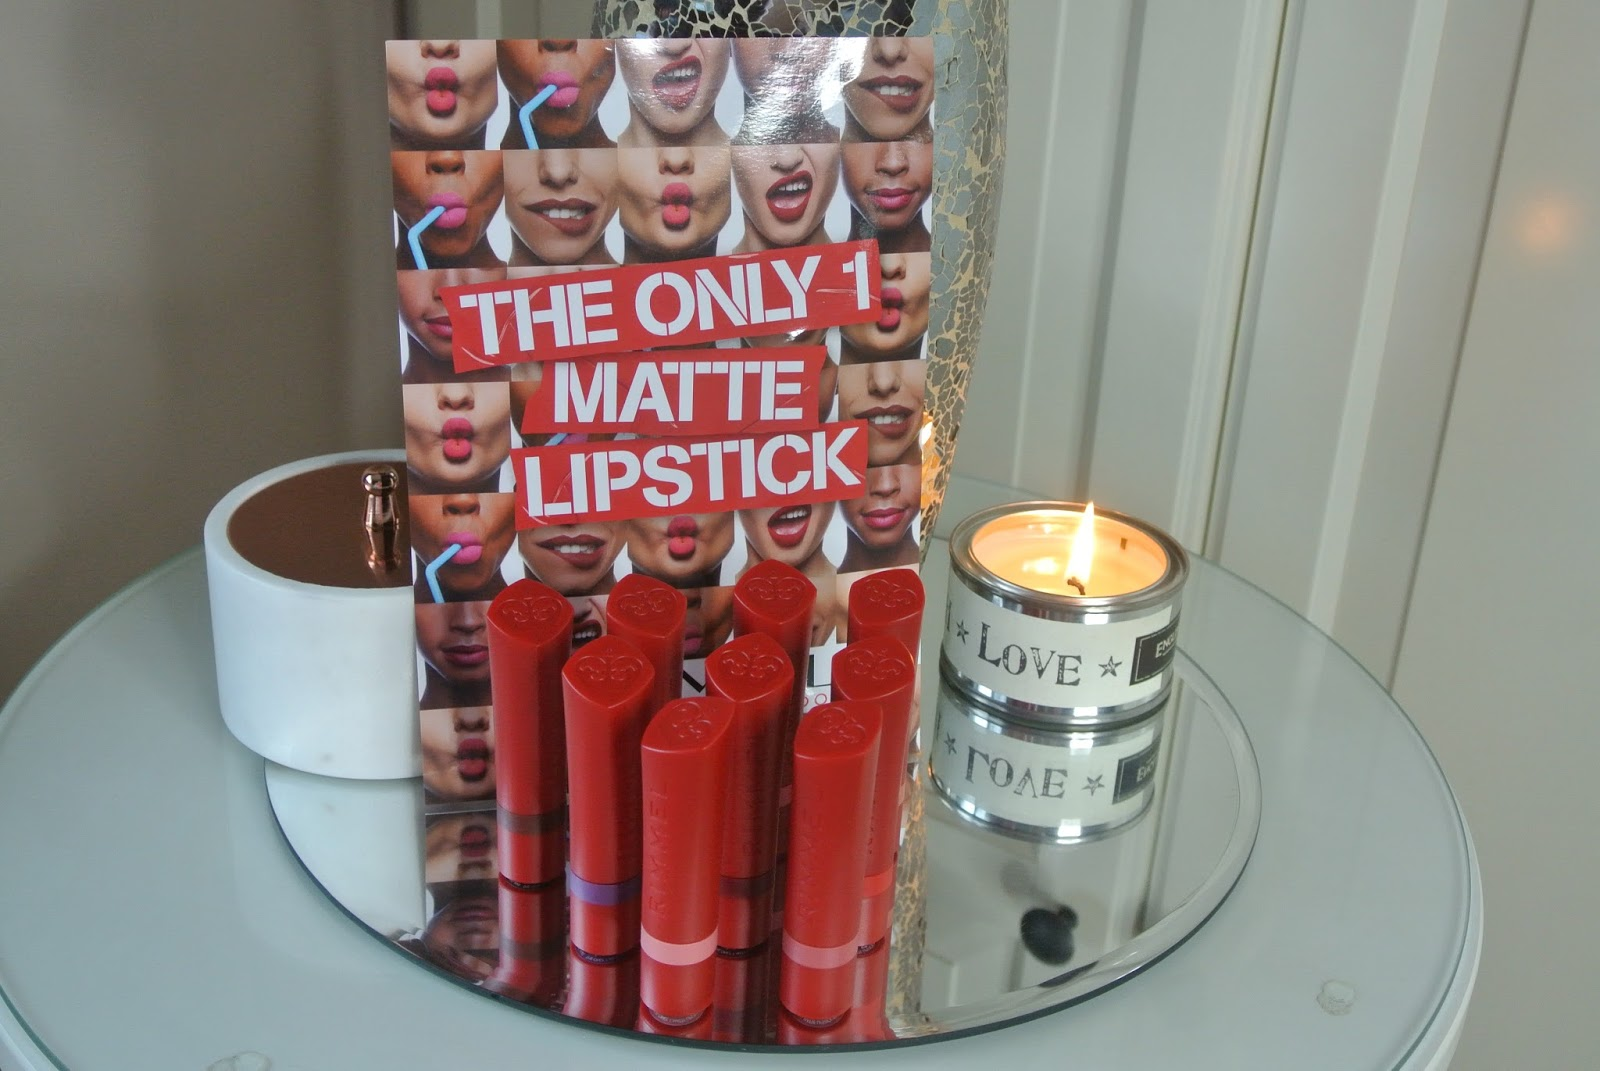 Rimmel The Only 1 Matte Lipstick Image